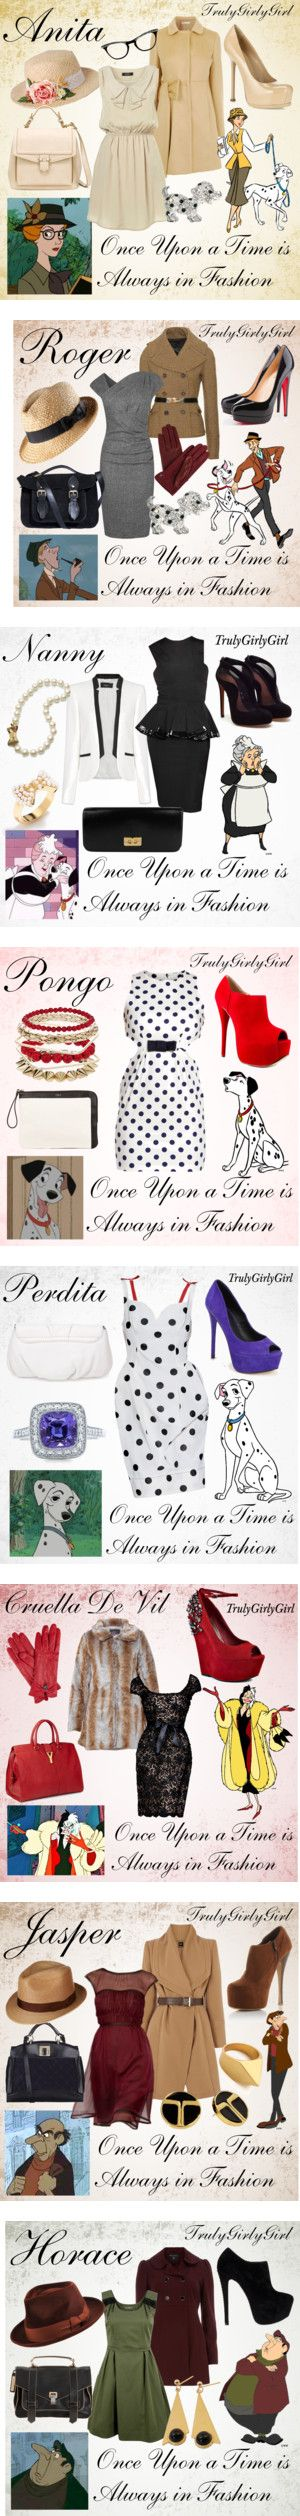 """Disney Style: 101 Dalmations Collection"" by trulygirlygirl ❤ liked on Polyvore"